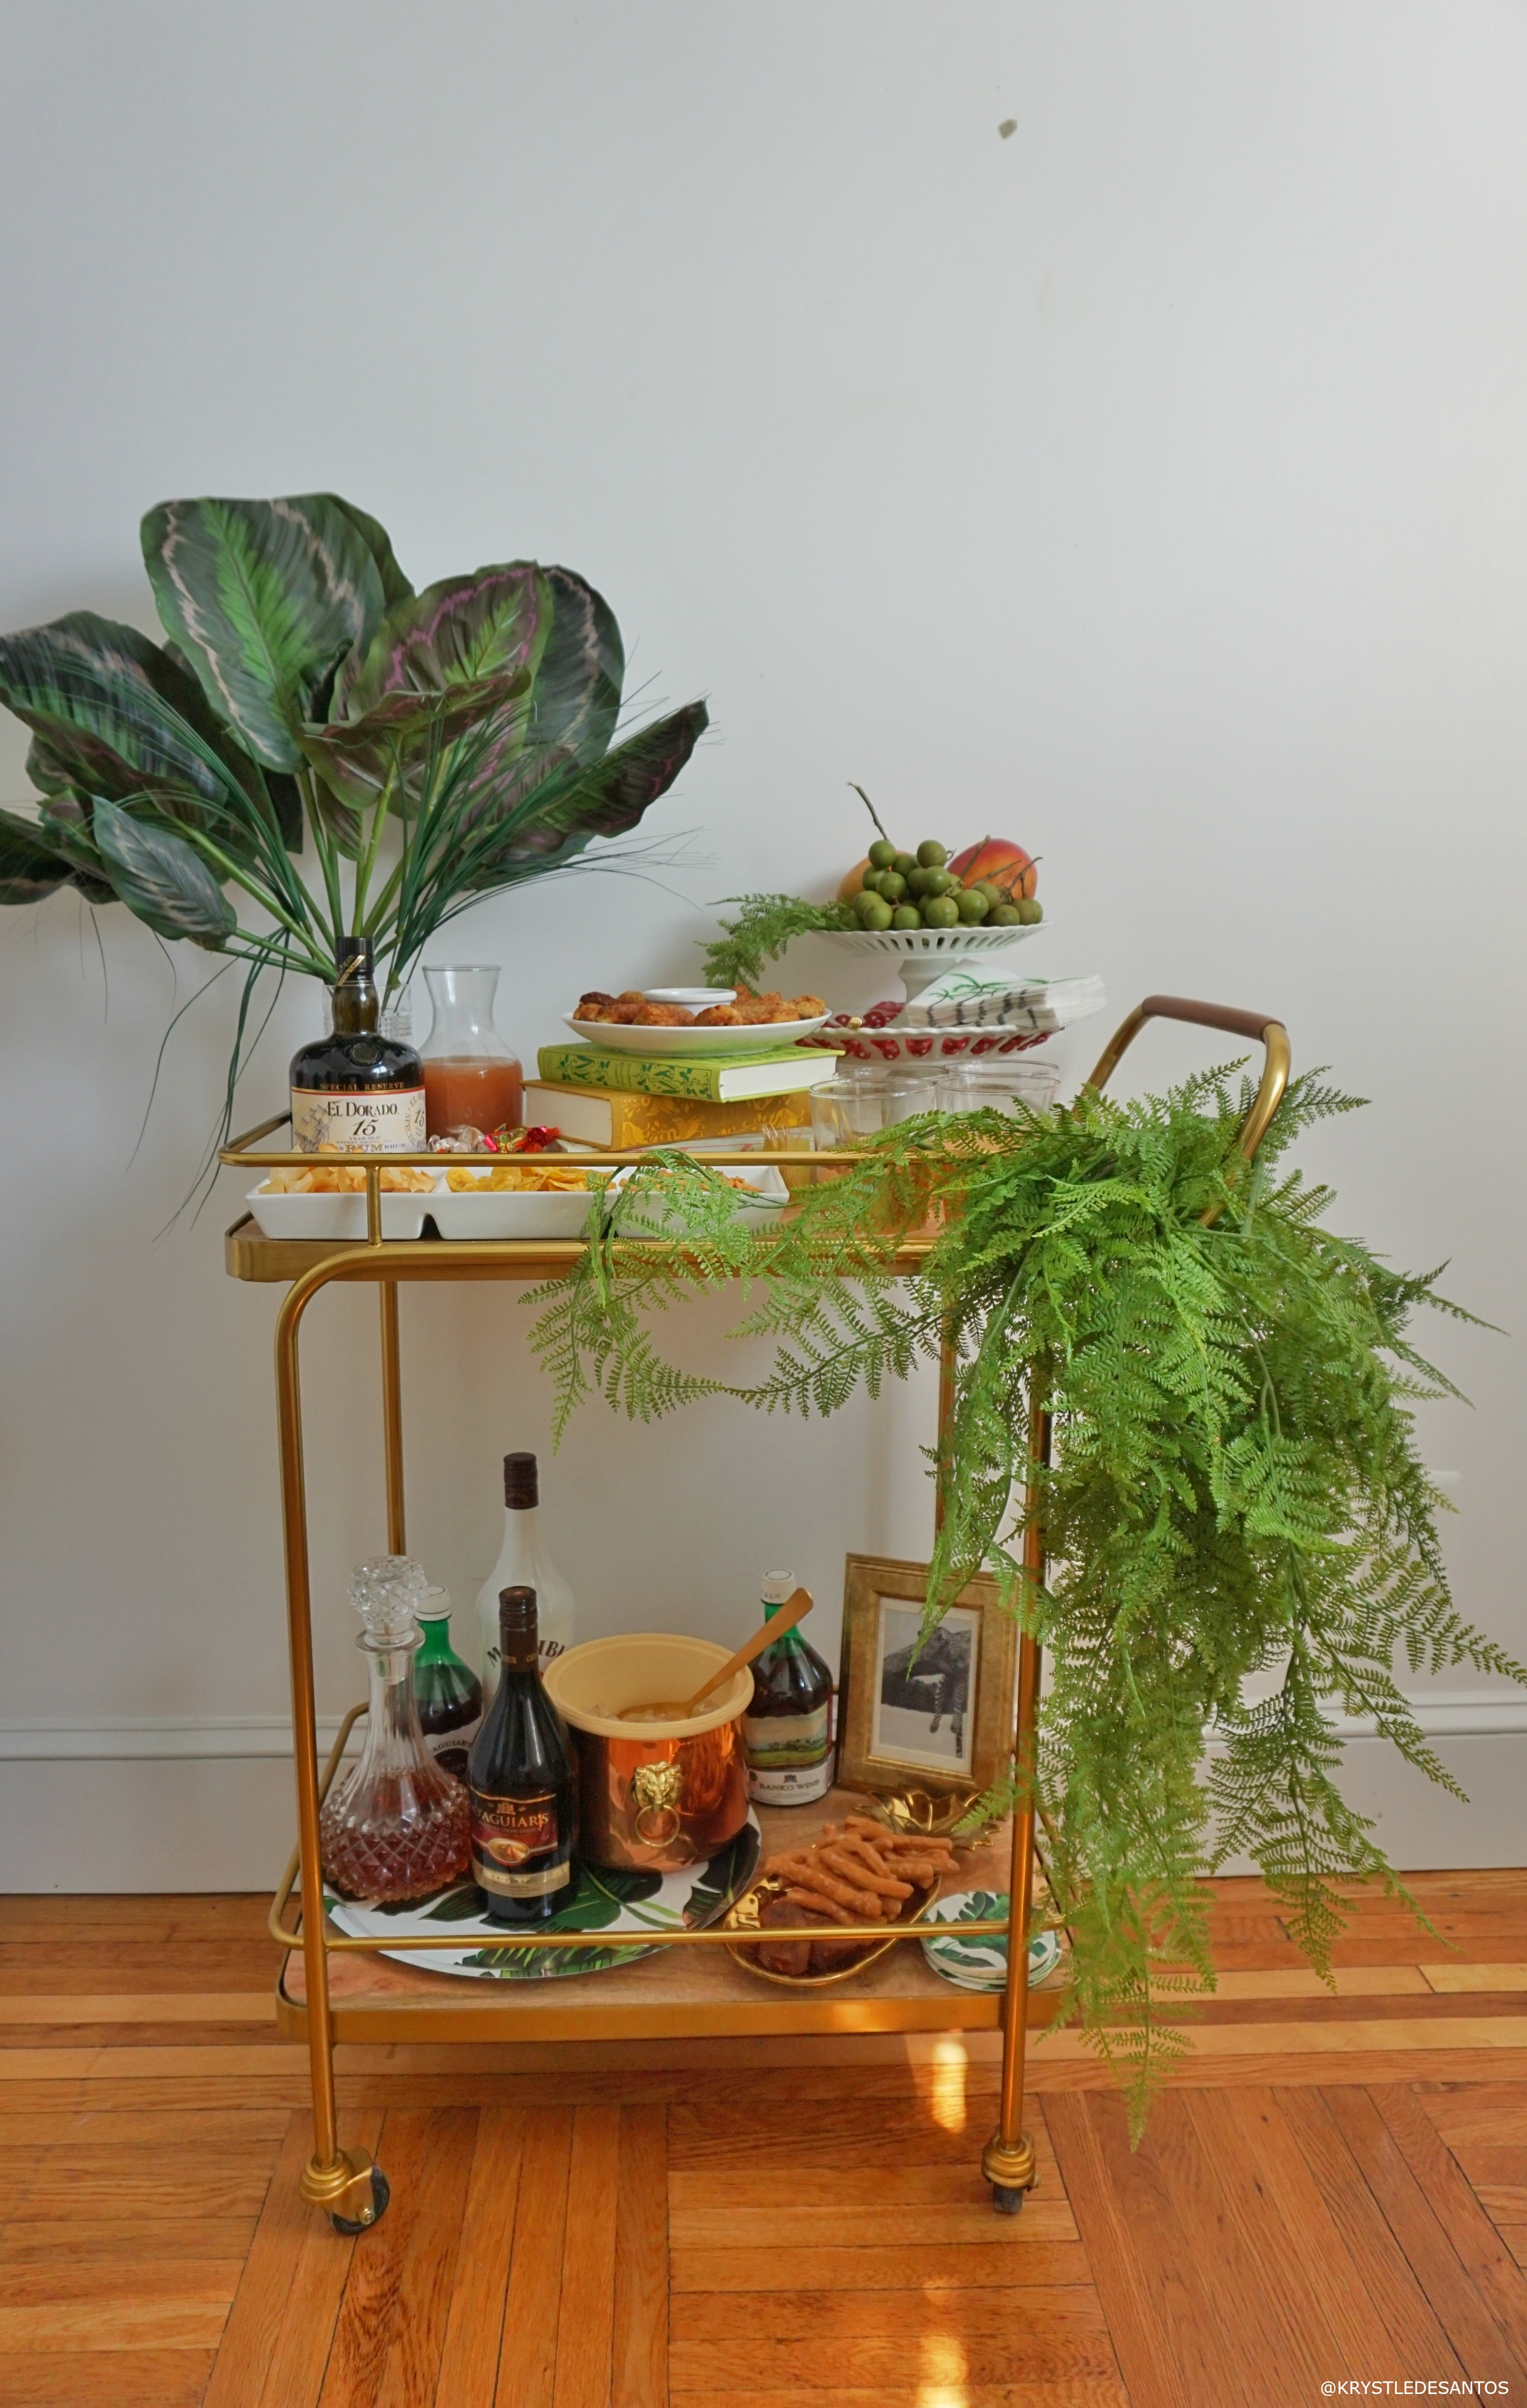 STYLE AND THE BARCART